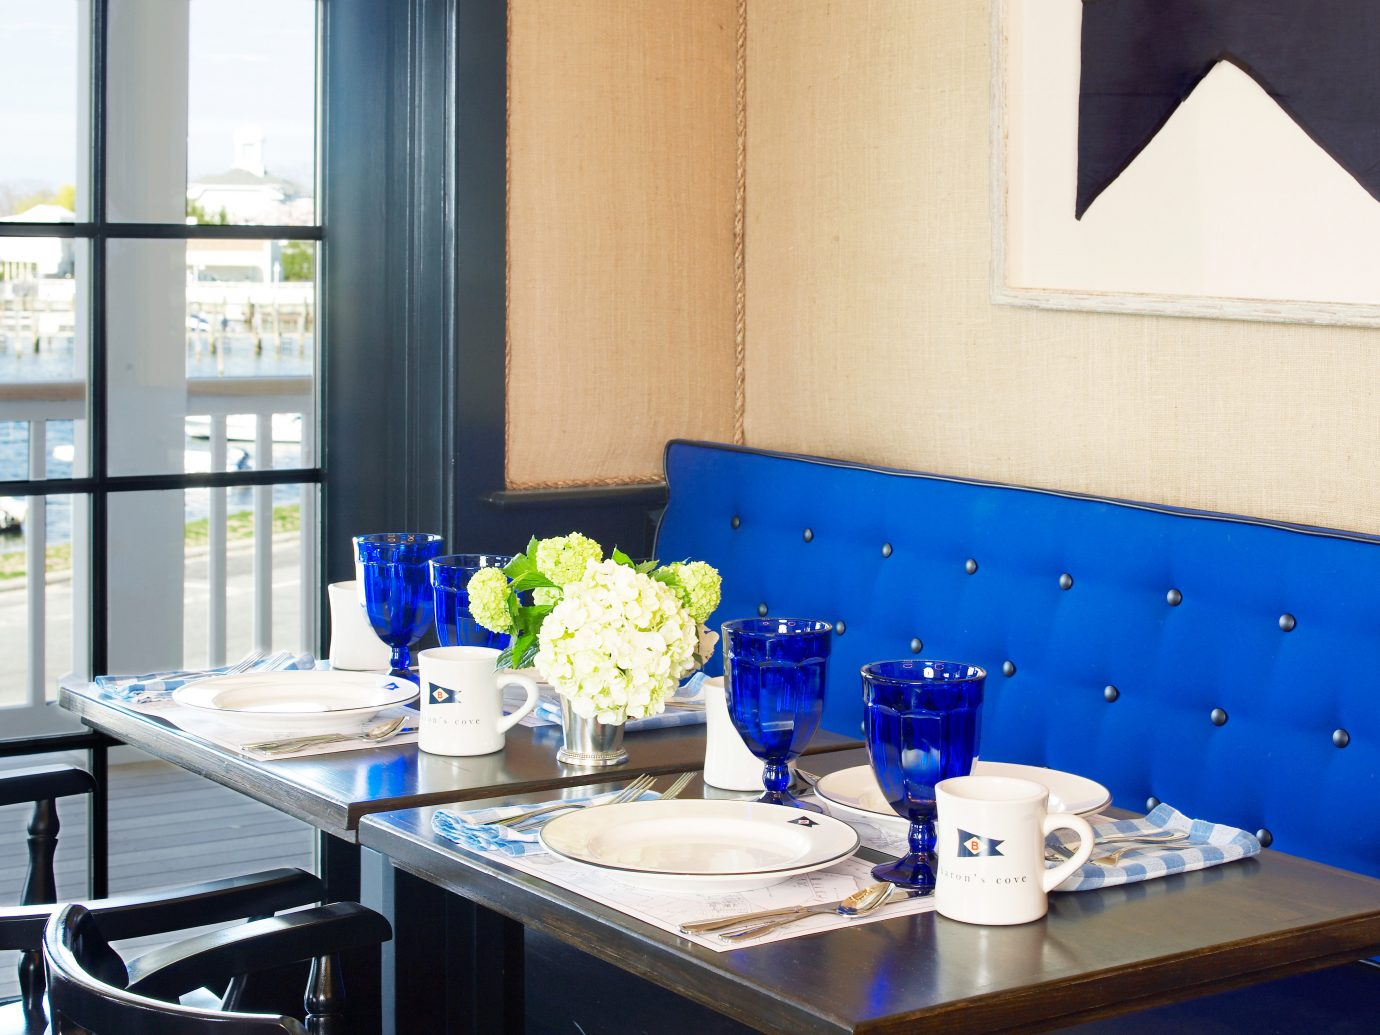 Boutique Dining Eat Modern Secret Getaways Trip Ideas table indoor blue room window dining room interior design restaurant home Design window covering living room apartment Kitchen dining table